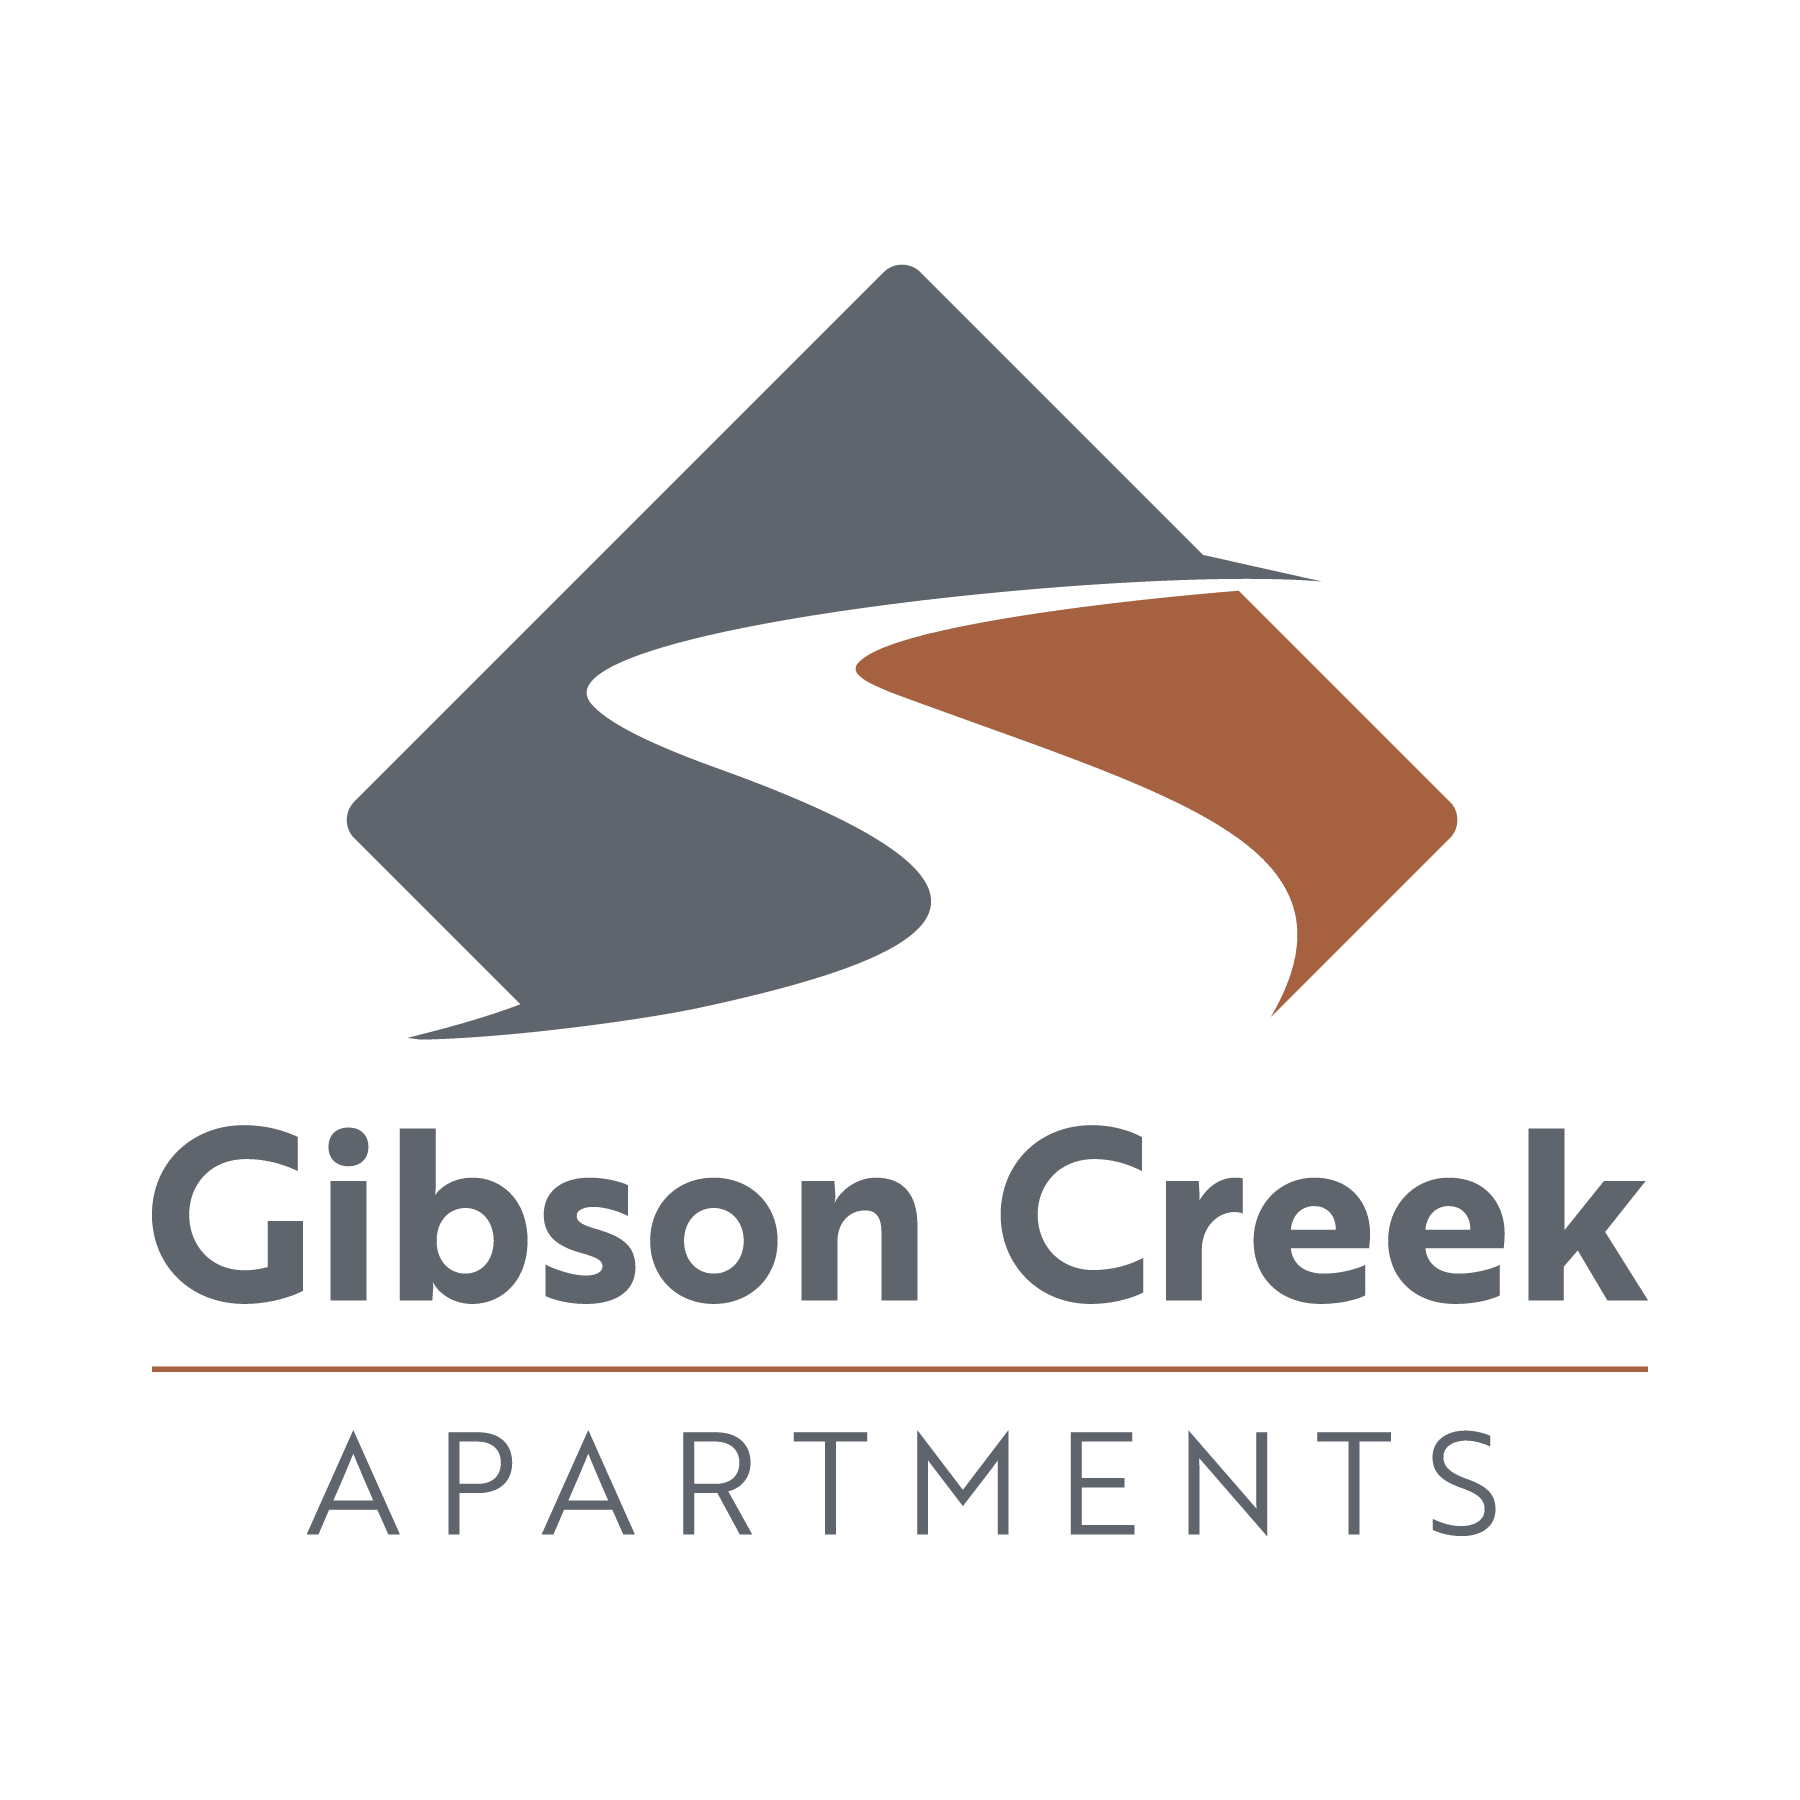 Gibson Creek Apartments